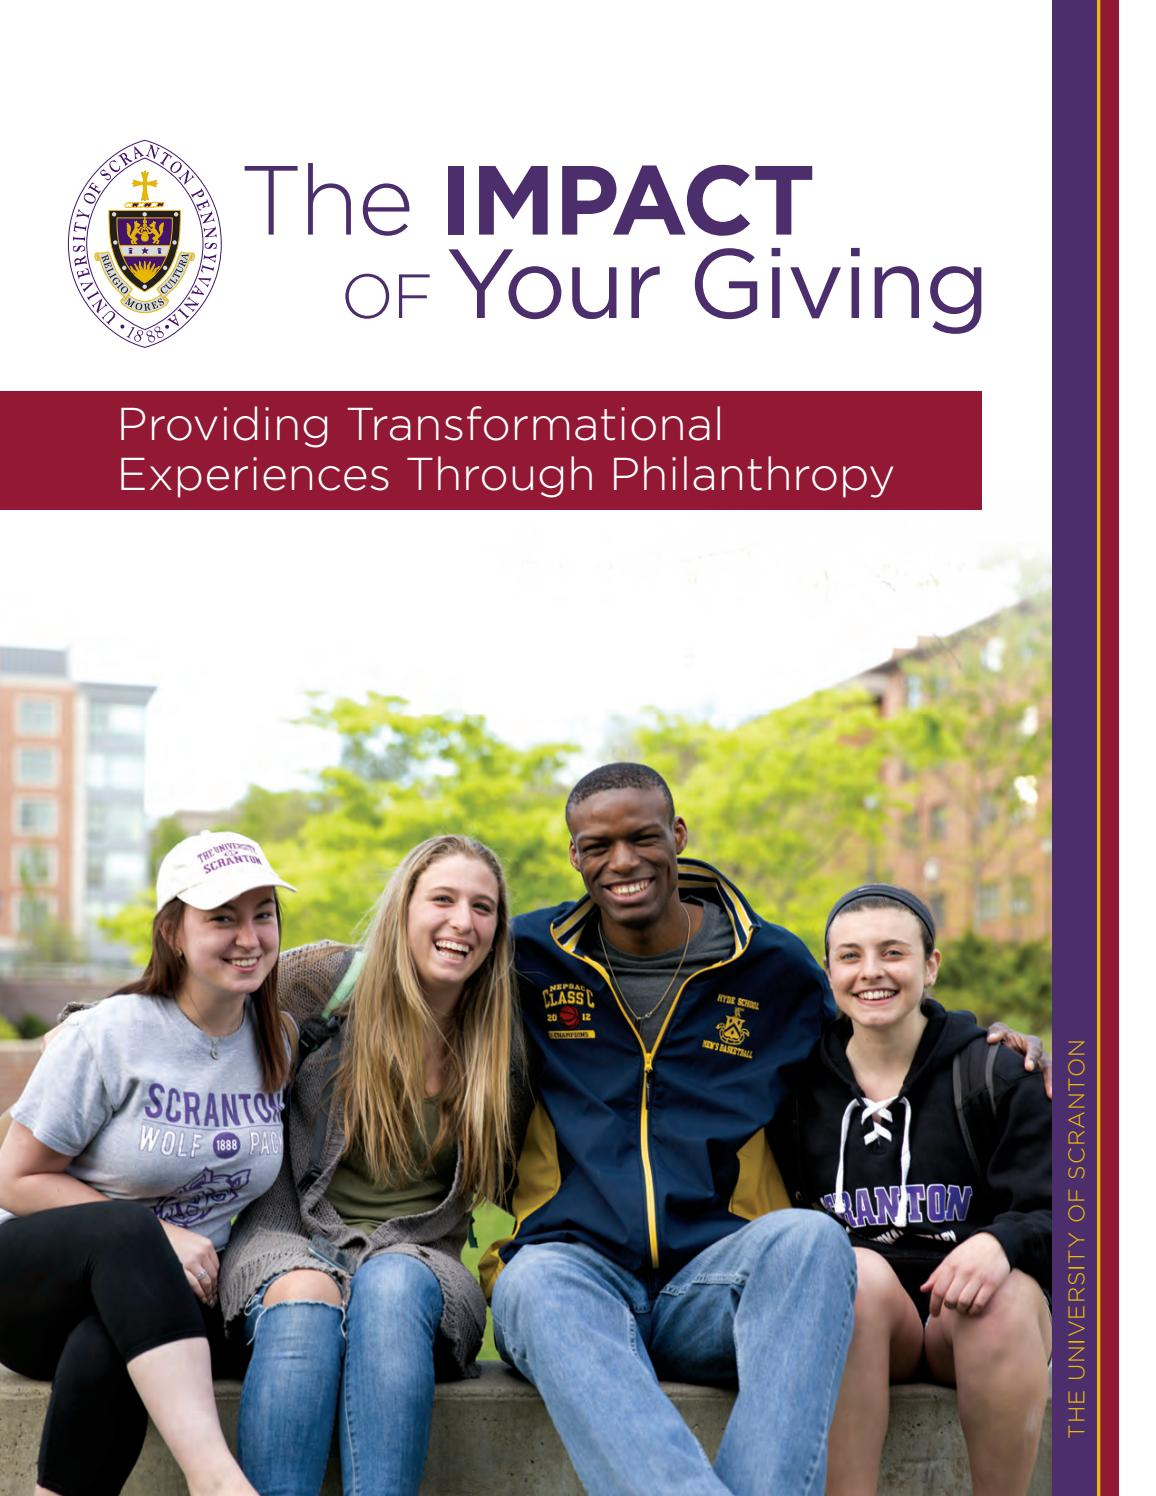 The University Of Scranton 2016 Philanthropy Impact Report